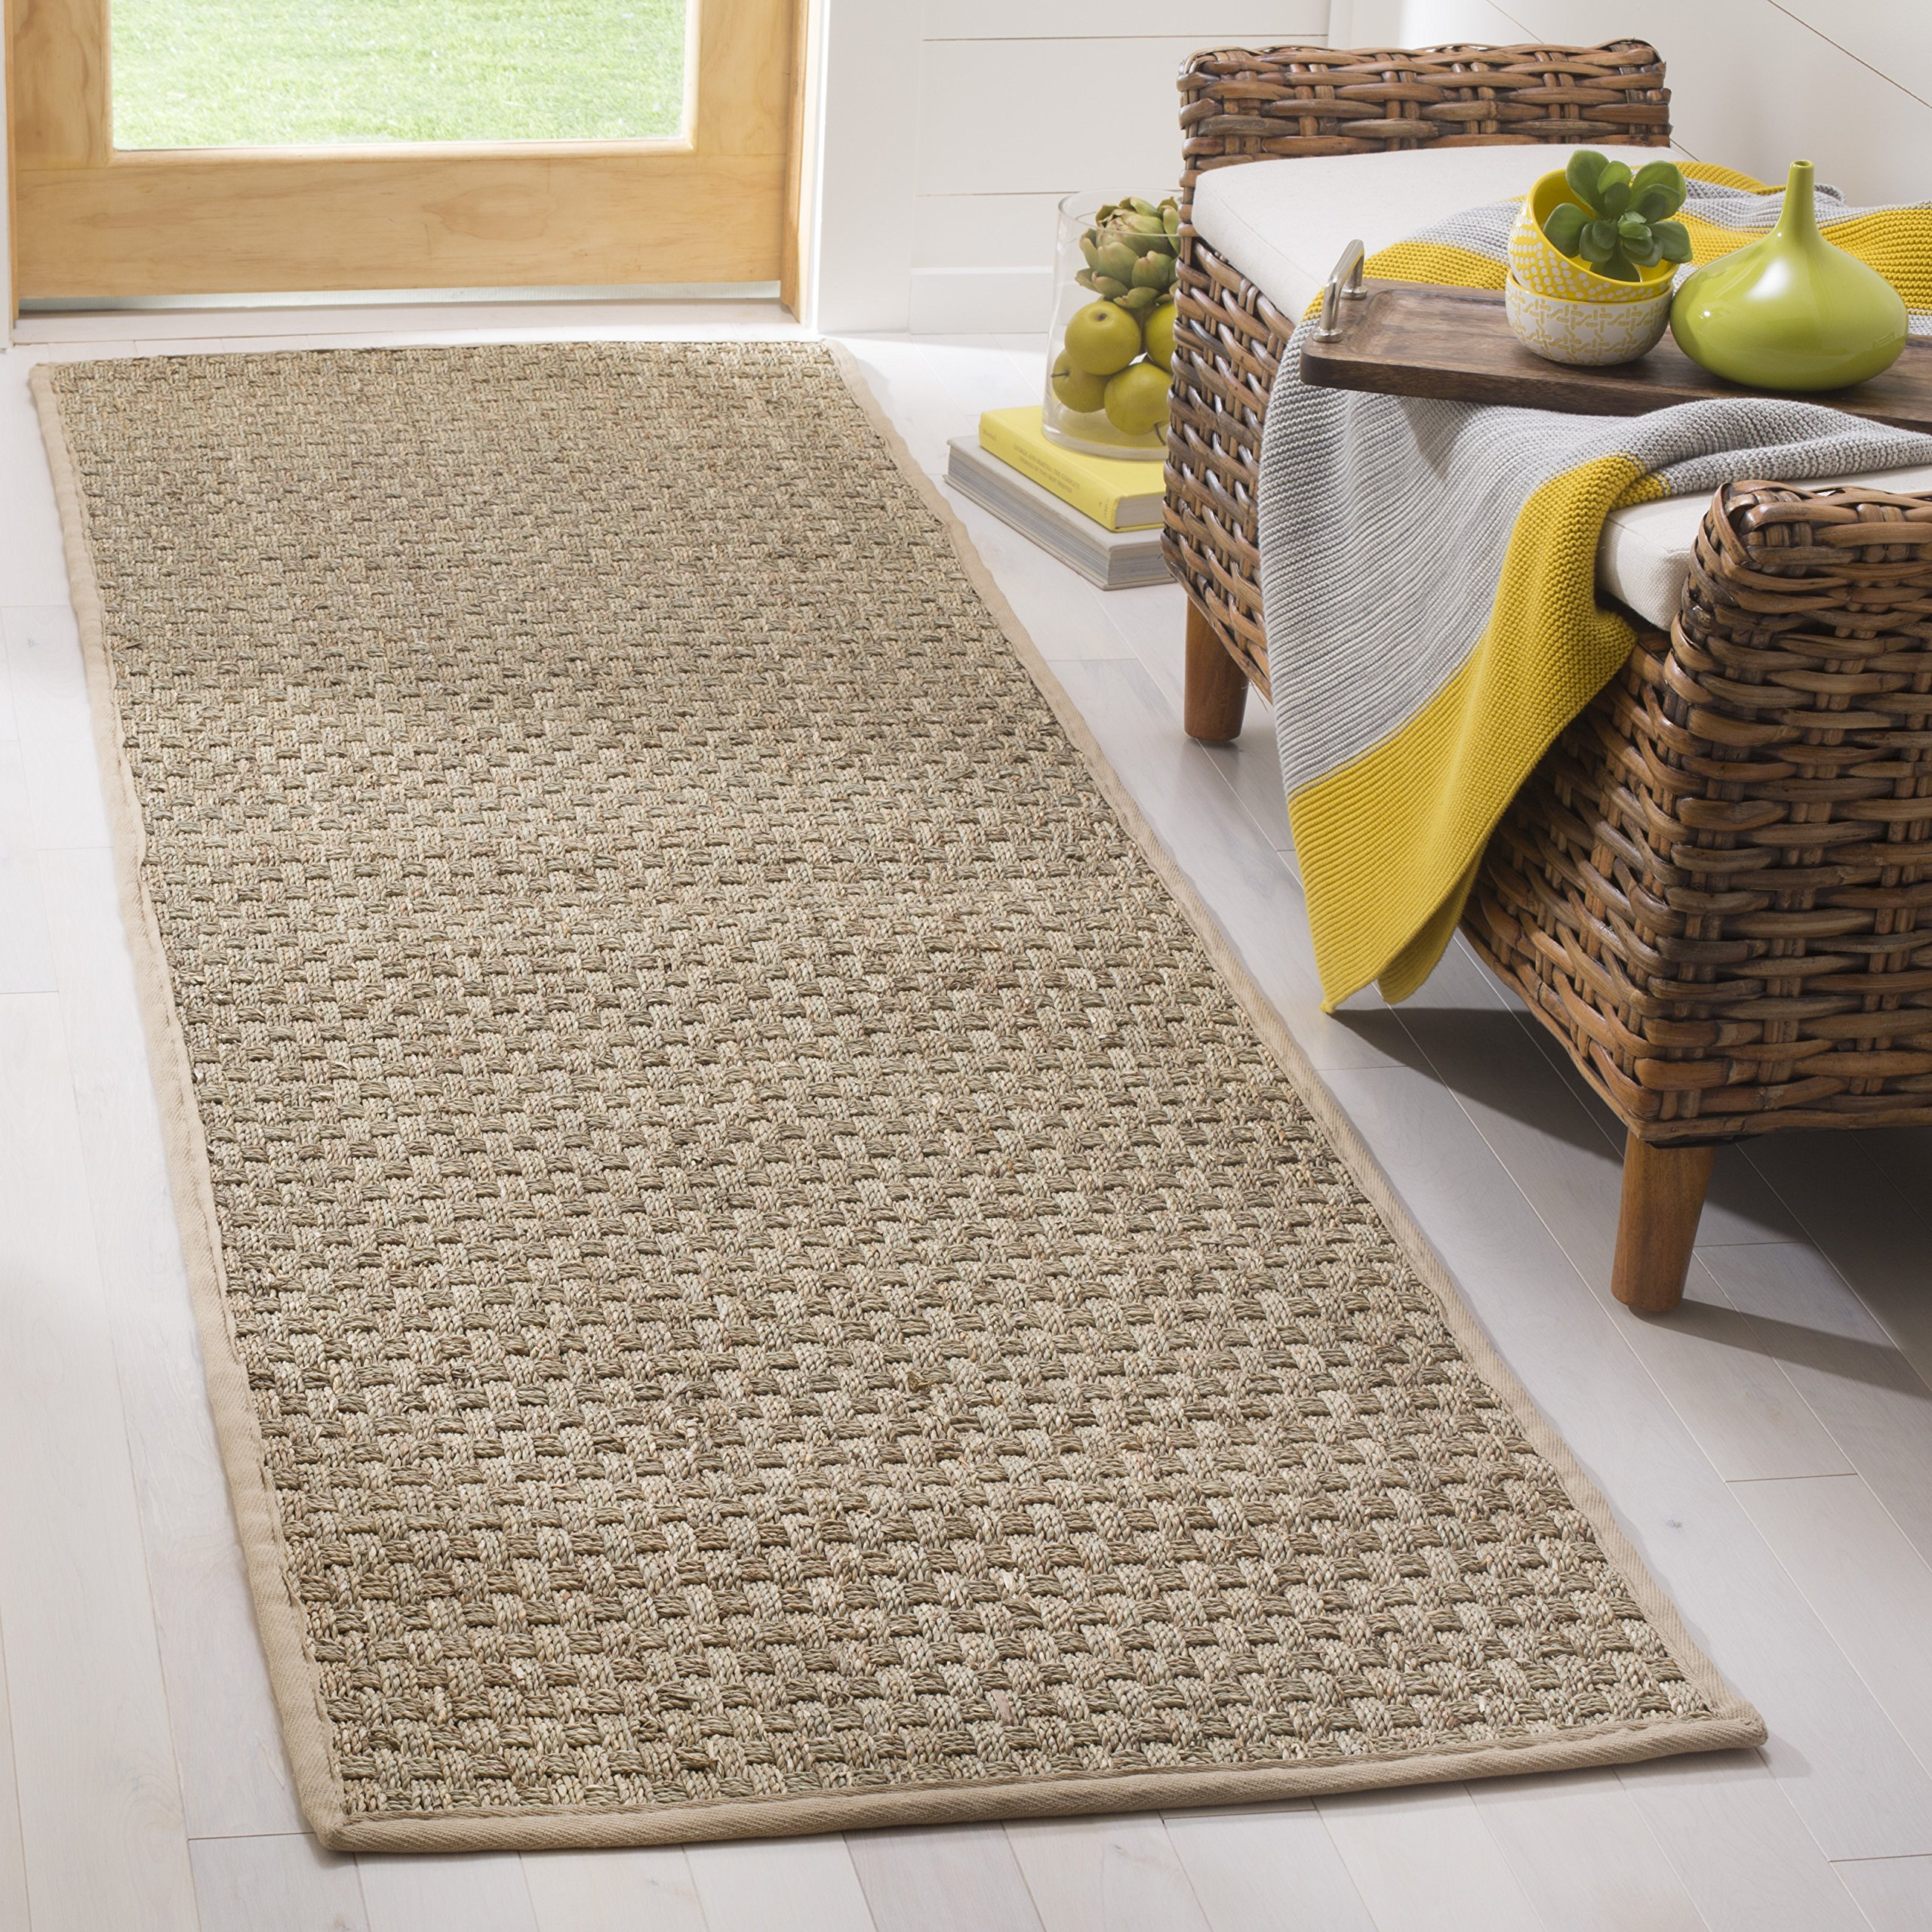 Safavieh Natural Fiber Collection NF114A Basketweave Natural and Beige Summer Seagrass Area Rug (2'6'' x 4')